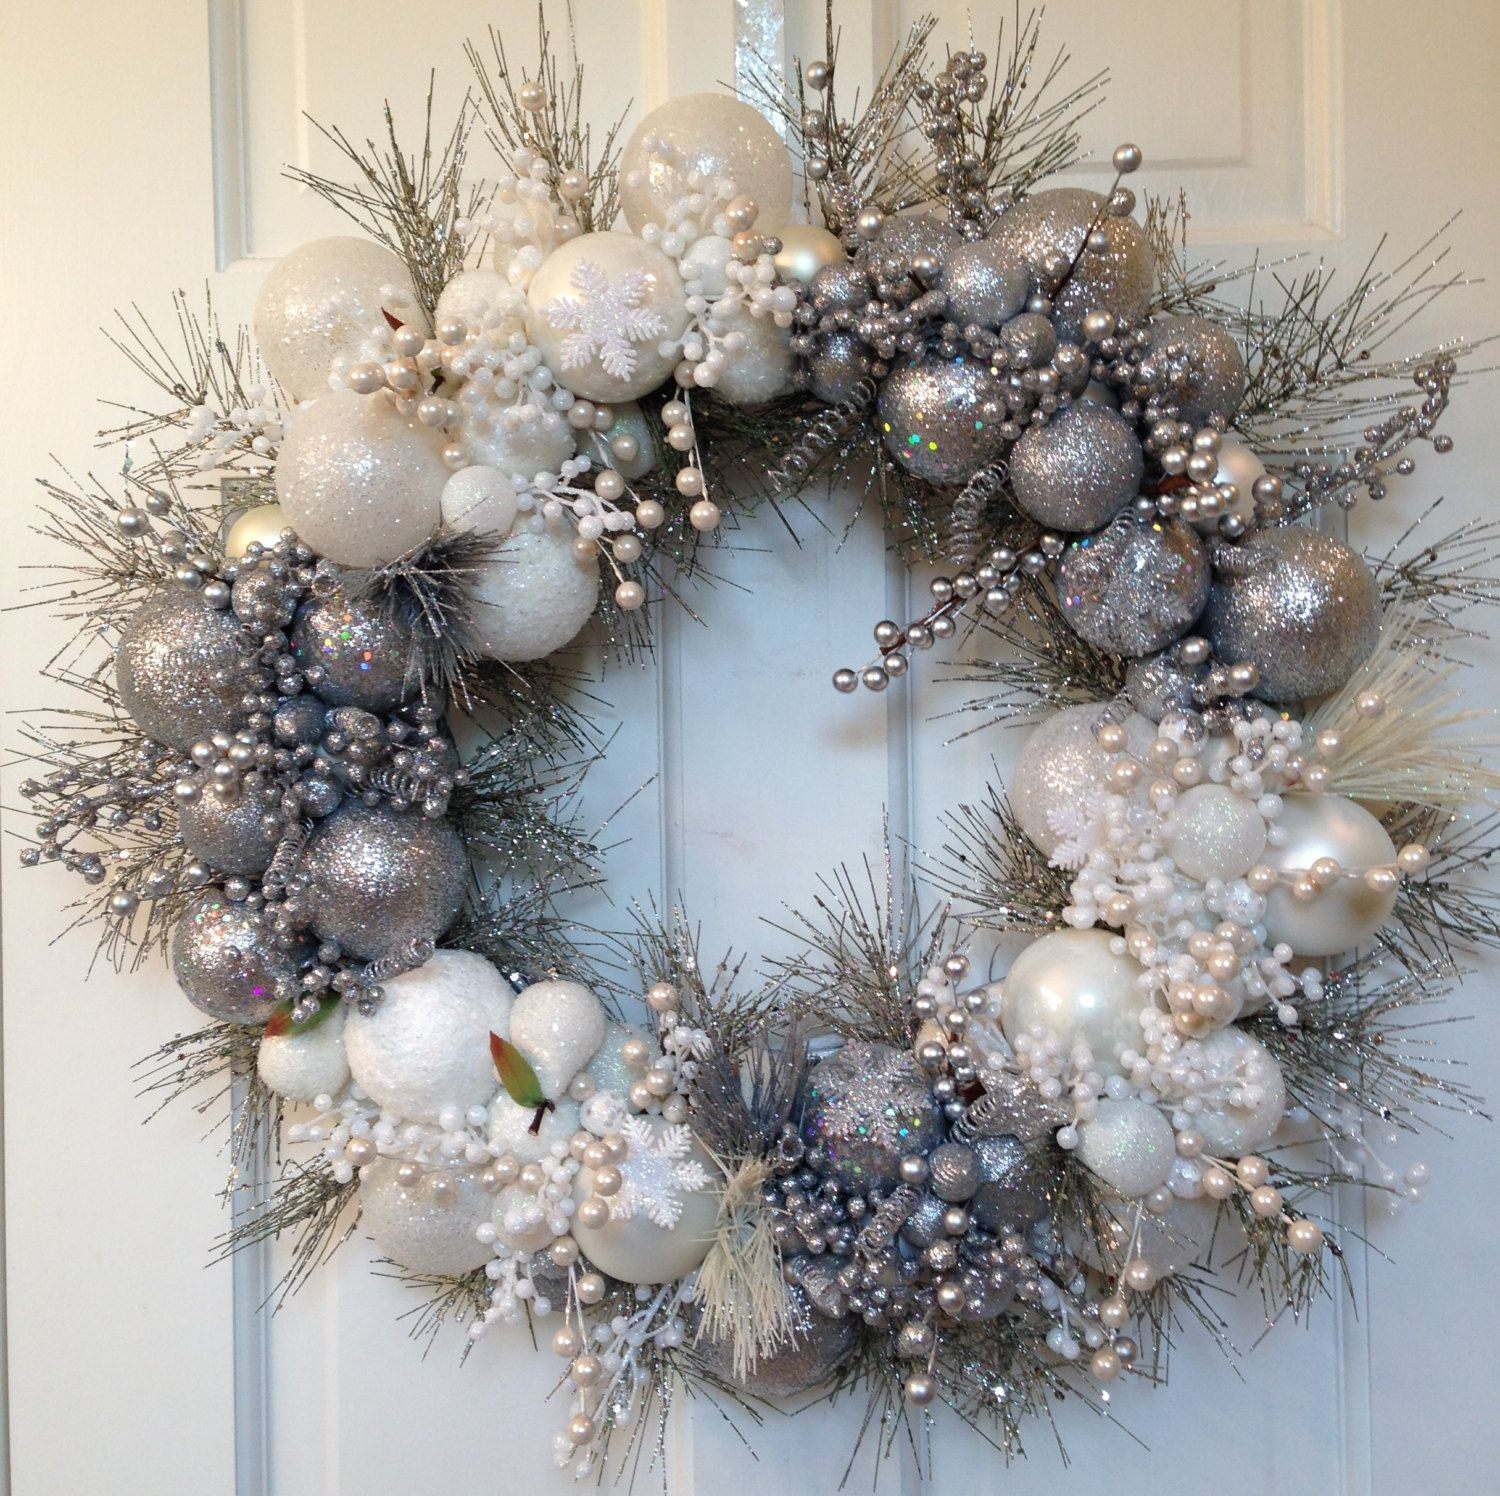 Silver And White Christmas Wreath Front Door Wreath Holiday Wreath Ornament Wreath Silver Wr White Christmas Wreath Christmas Wreaths White Christmas Decor